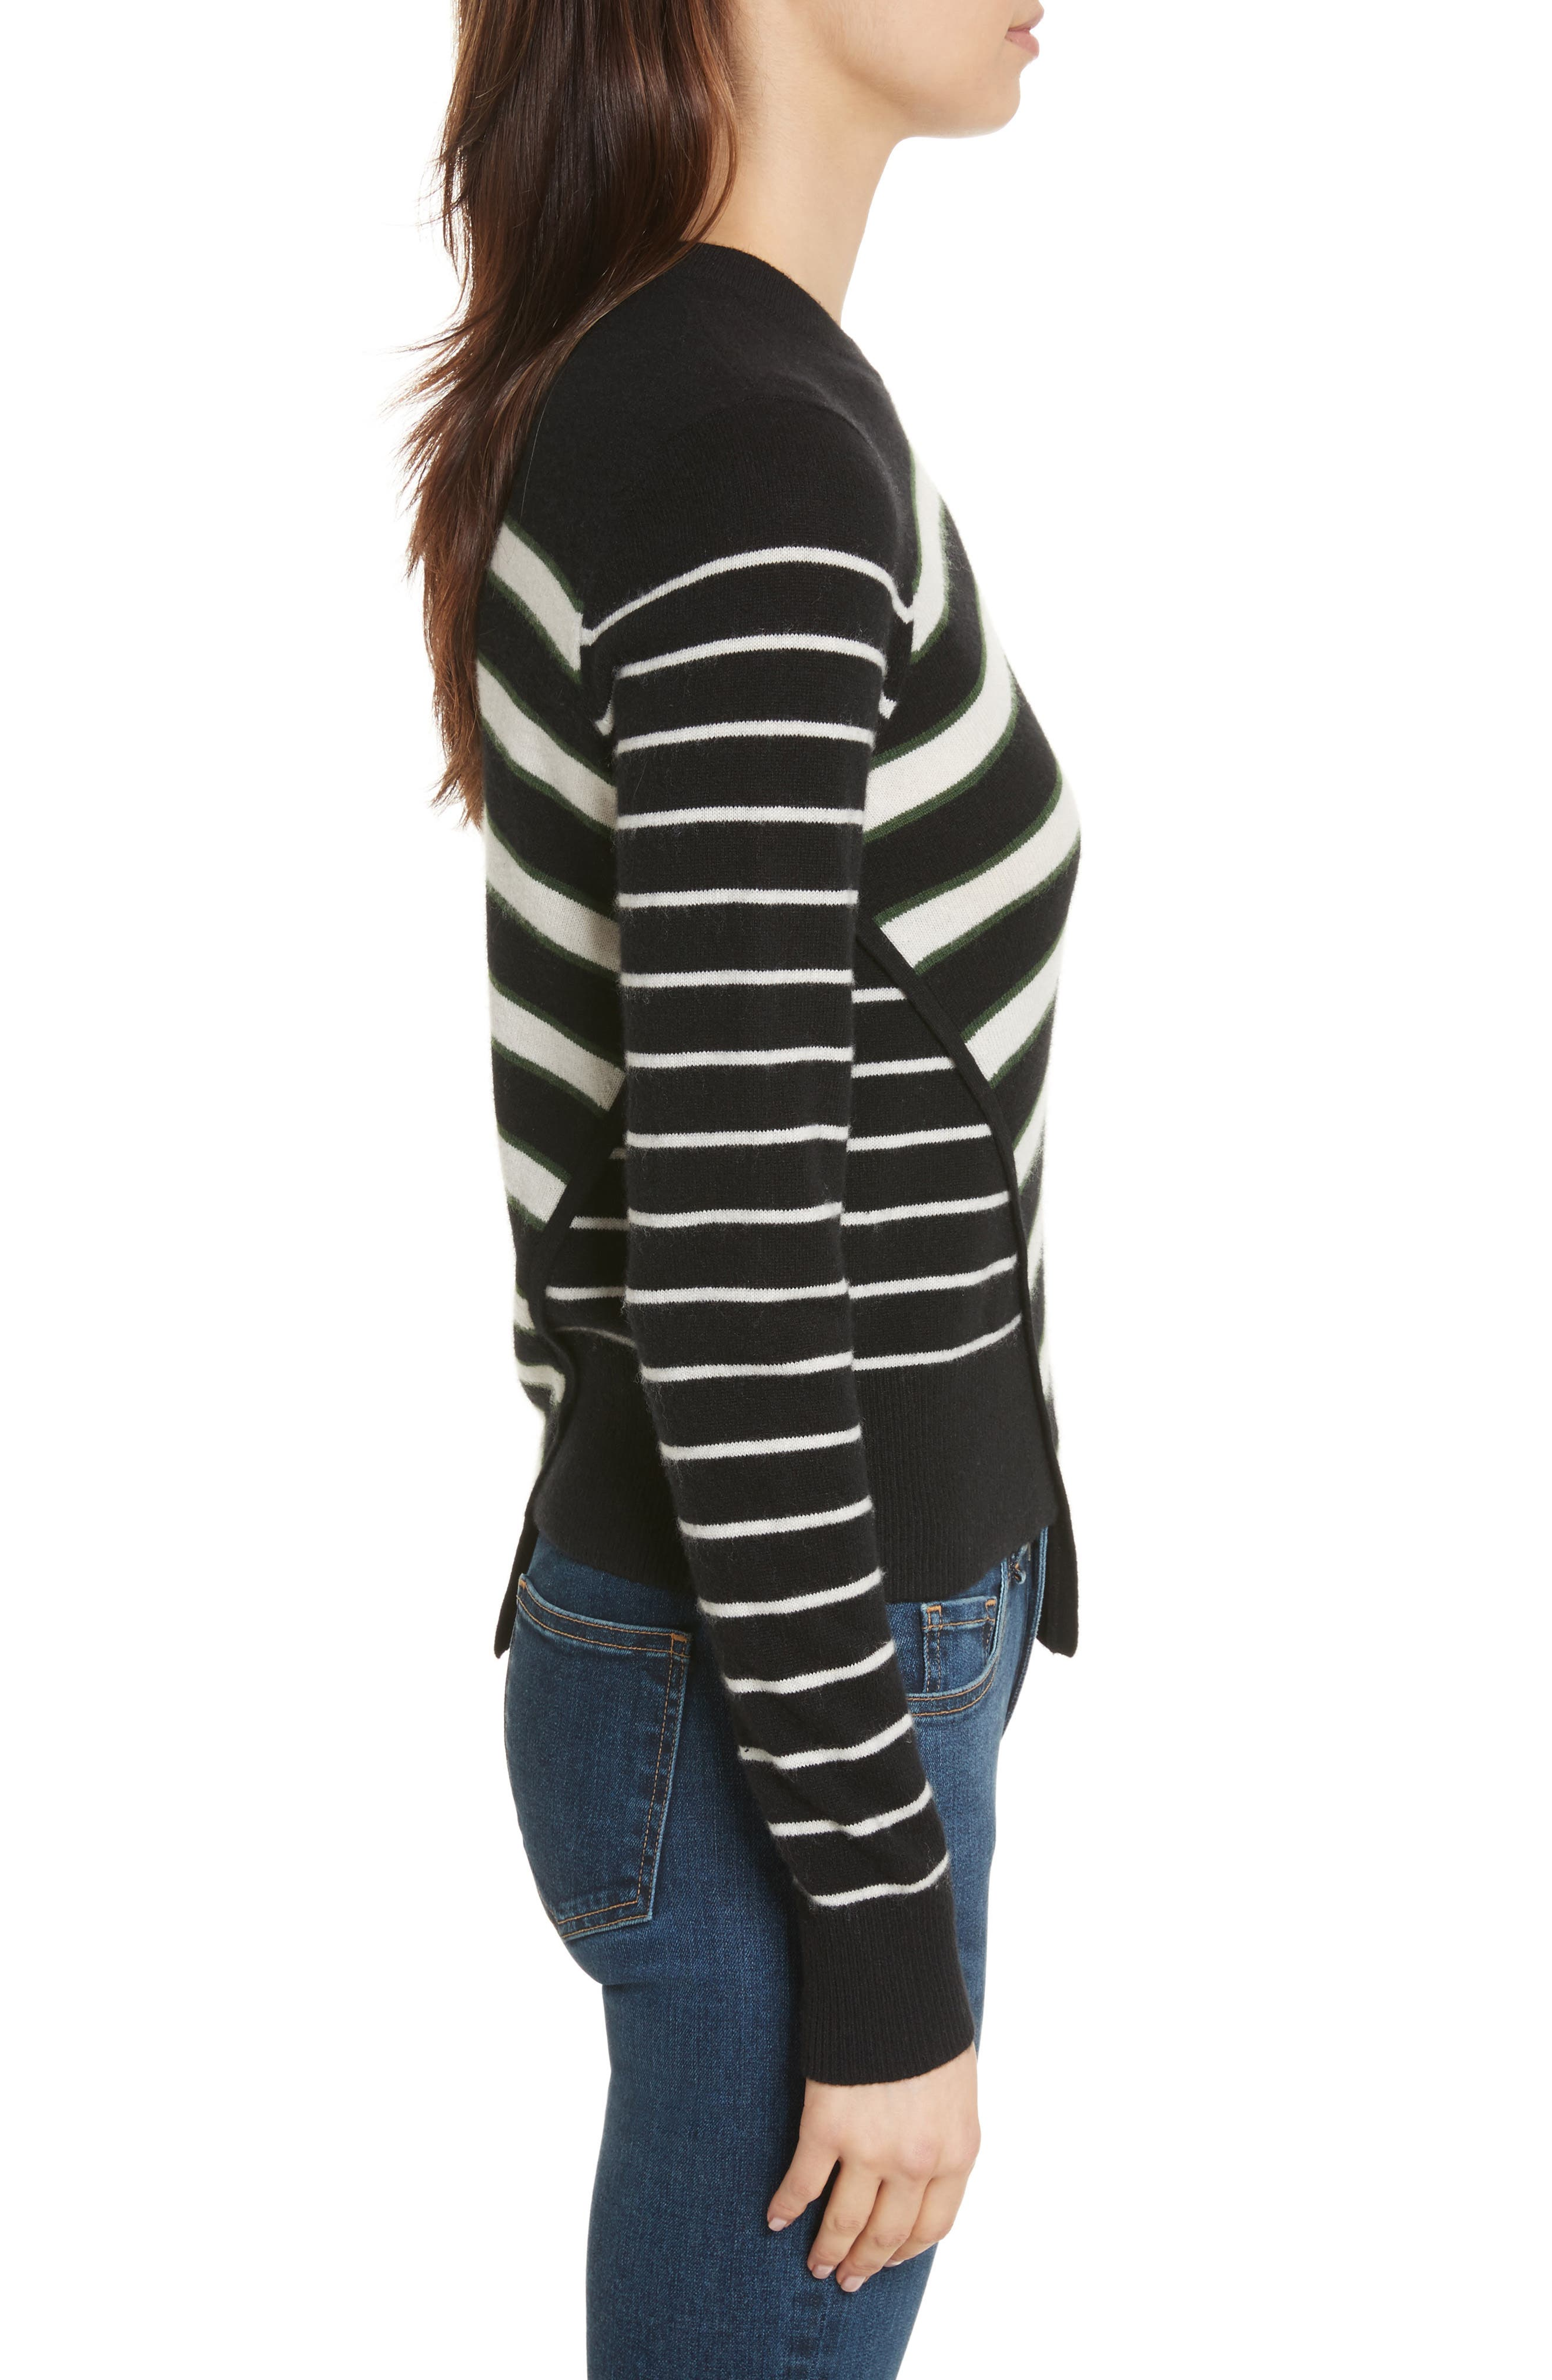 Pepper Cashmere Sweater,                             Alternate thumbnail 3, color,                             007